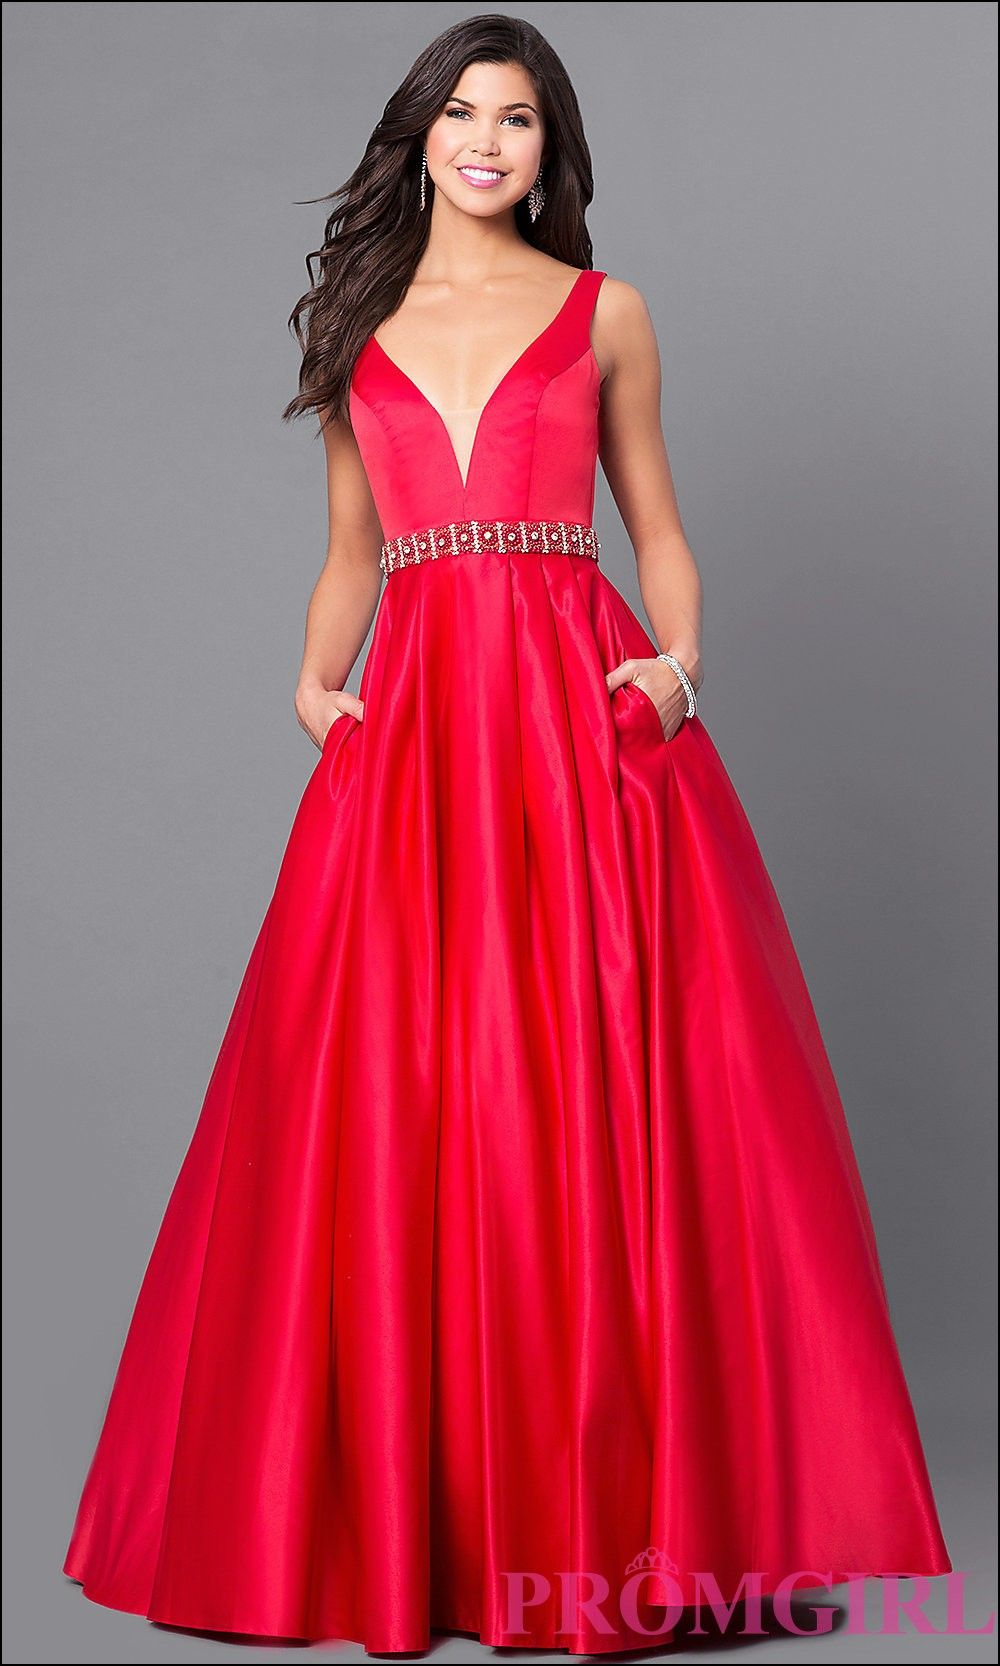 Red ballroom gowns dresses and gowns ideas pinterest ballroom